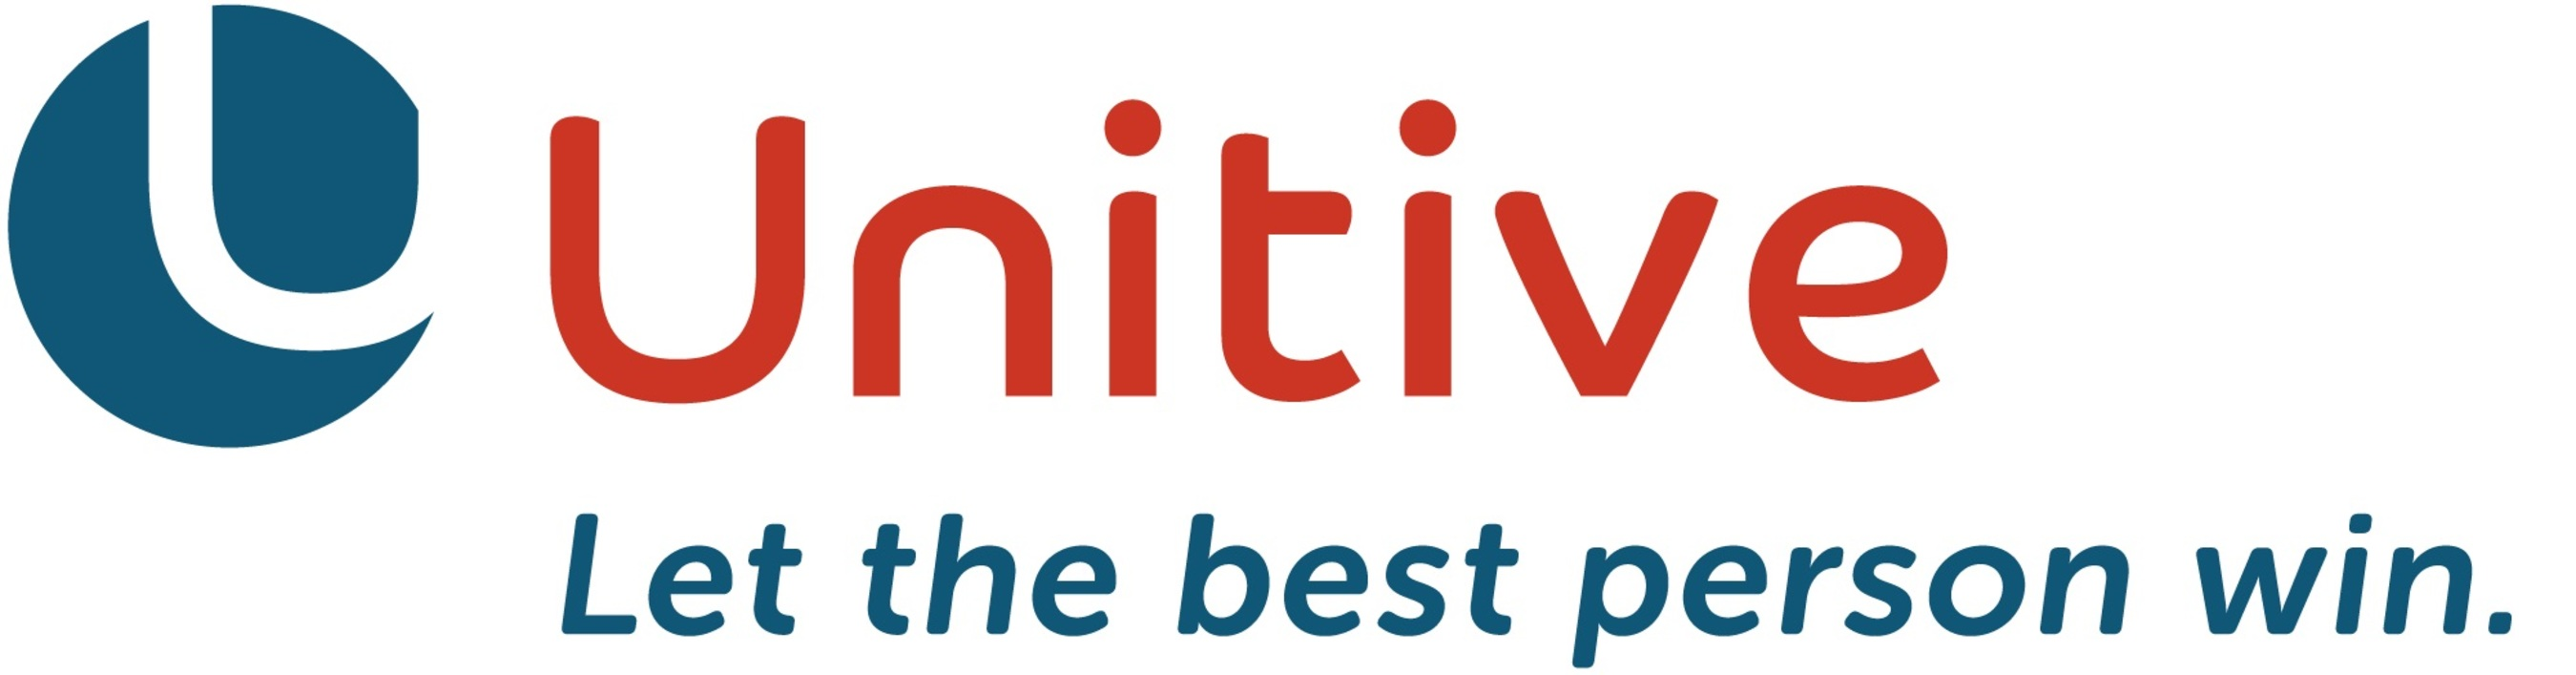 Unitive is a technology solution for full talent activation, helping corporations build diverse, innovative, ...